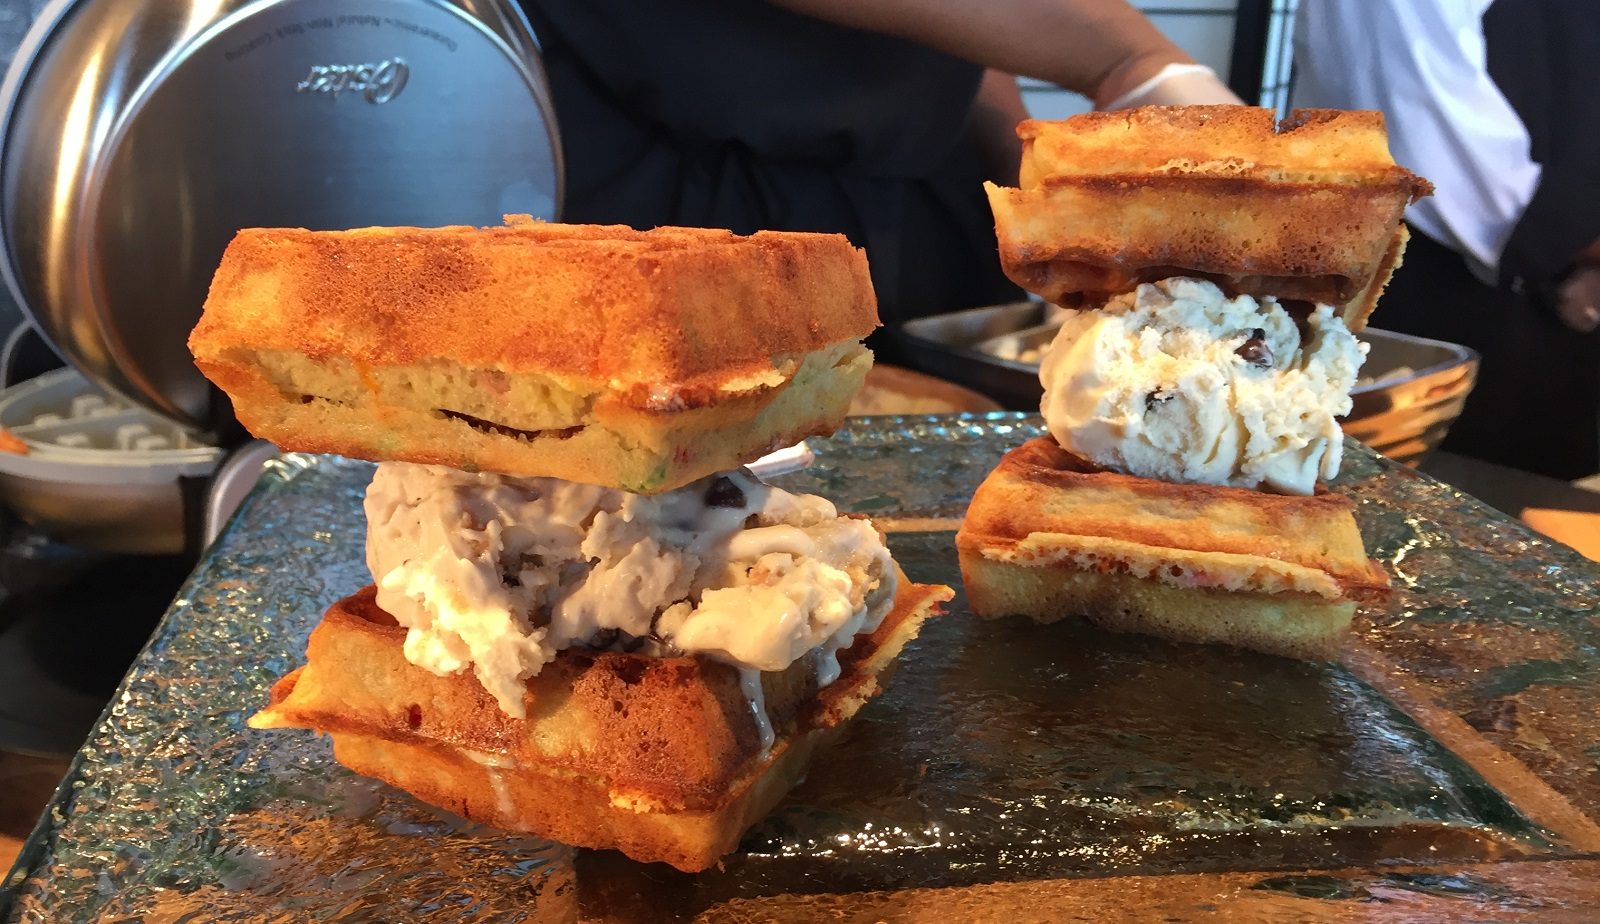 The Perry's Ice Cream waffle sandwich is among the highlights of new Sabres concessions fare. (Aaron Besecker/Buffalo News)